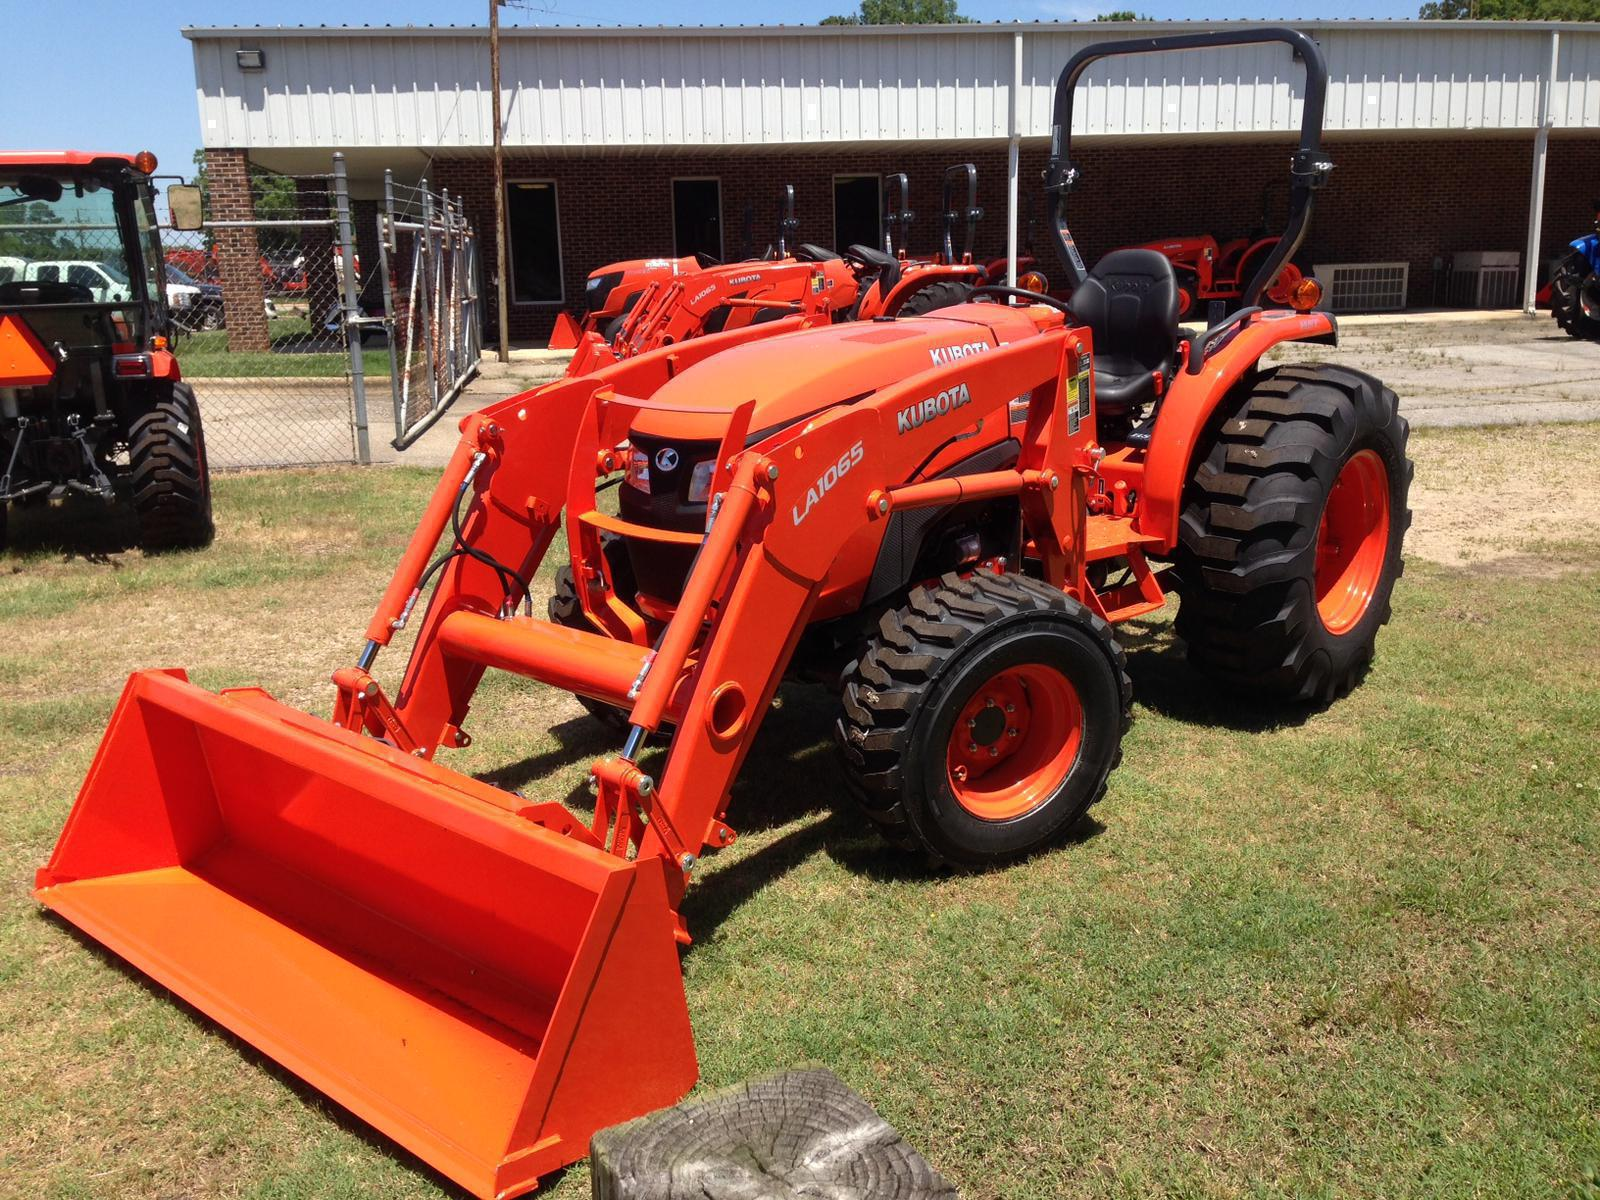 Kubota tractors for sale in kentucky - 2017 Kubota Mx5800 Hst 4wd For Sale In Raleigh Nc The Tractor Center 800 331 2519